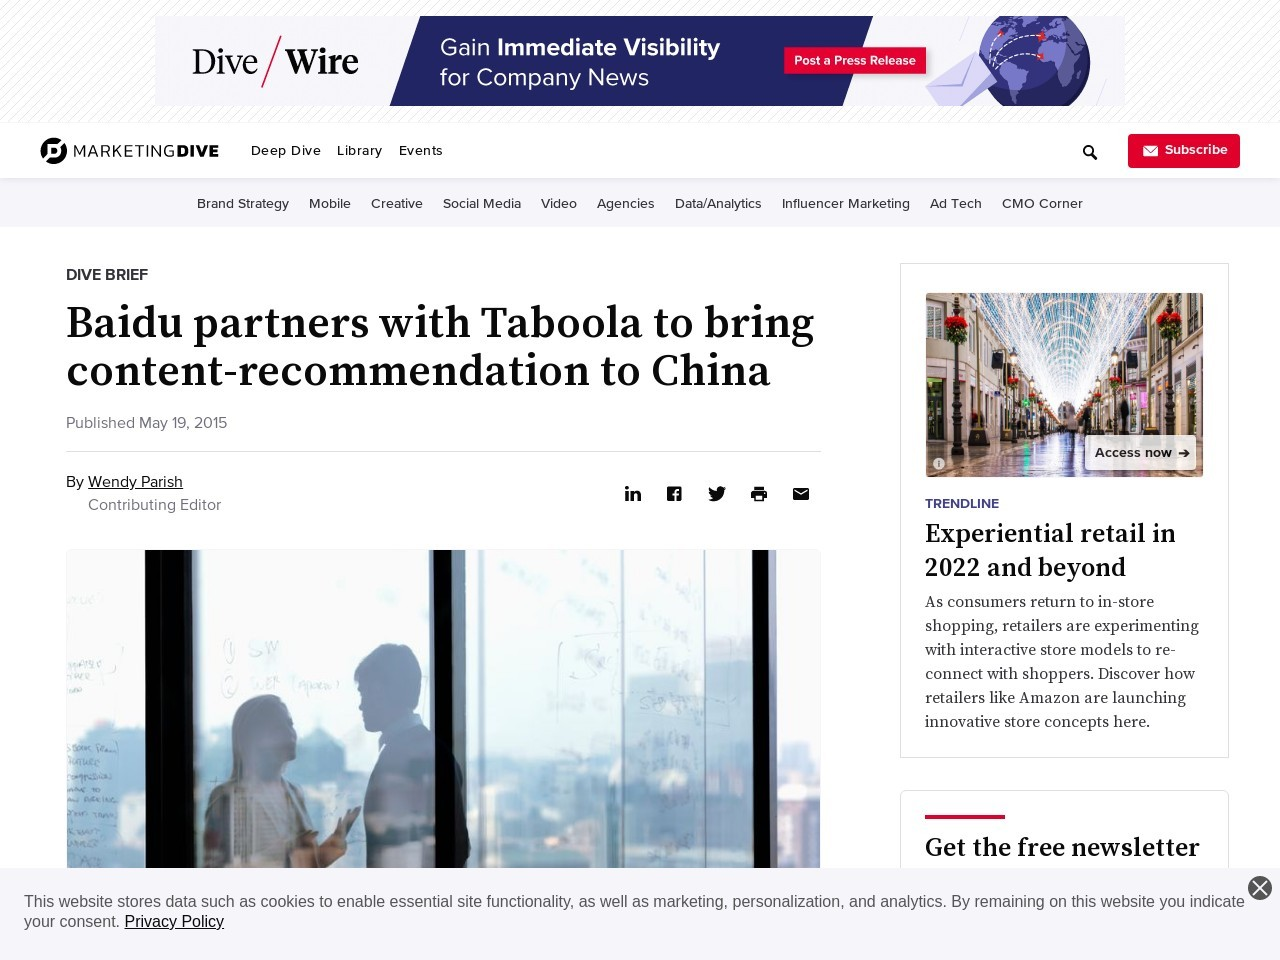 Baidu partners with Taboola to bring content-recommendation to China